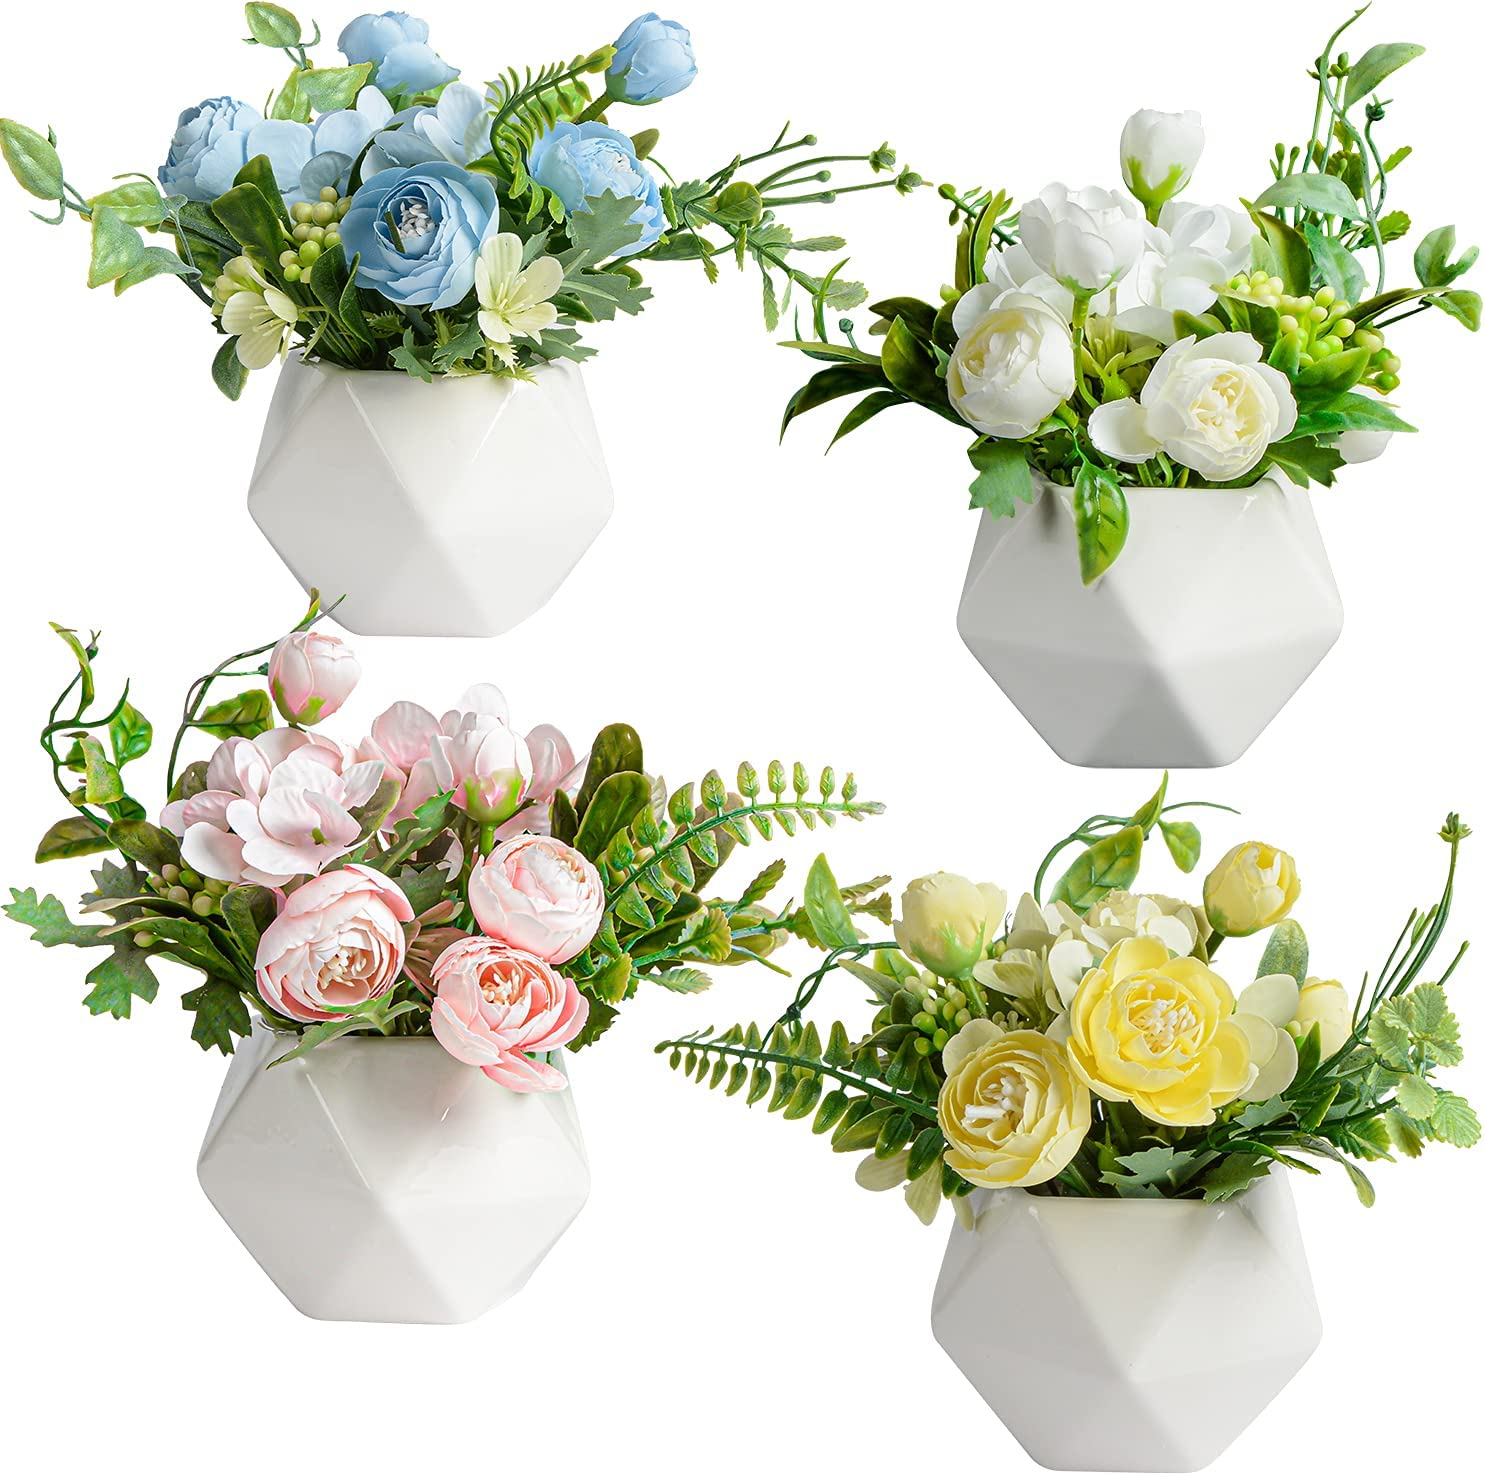 Set of 4 Potted Artificial Flowers Mini Silk Flow Fake Camellia Max 54% Wholesale OFF